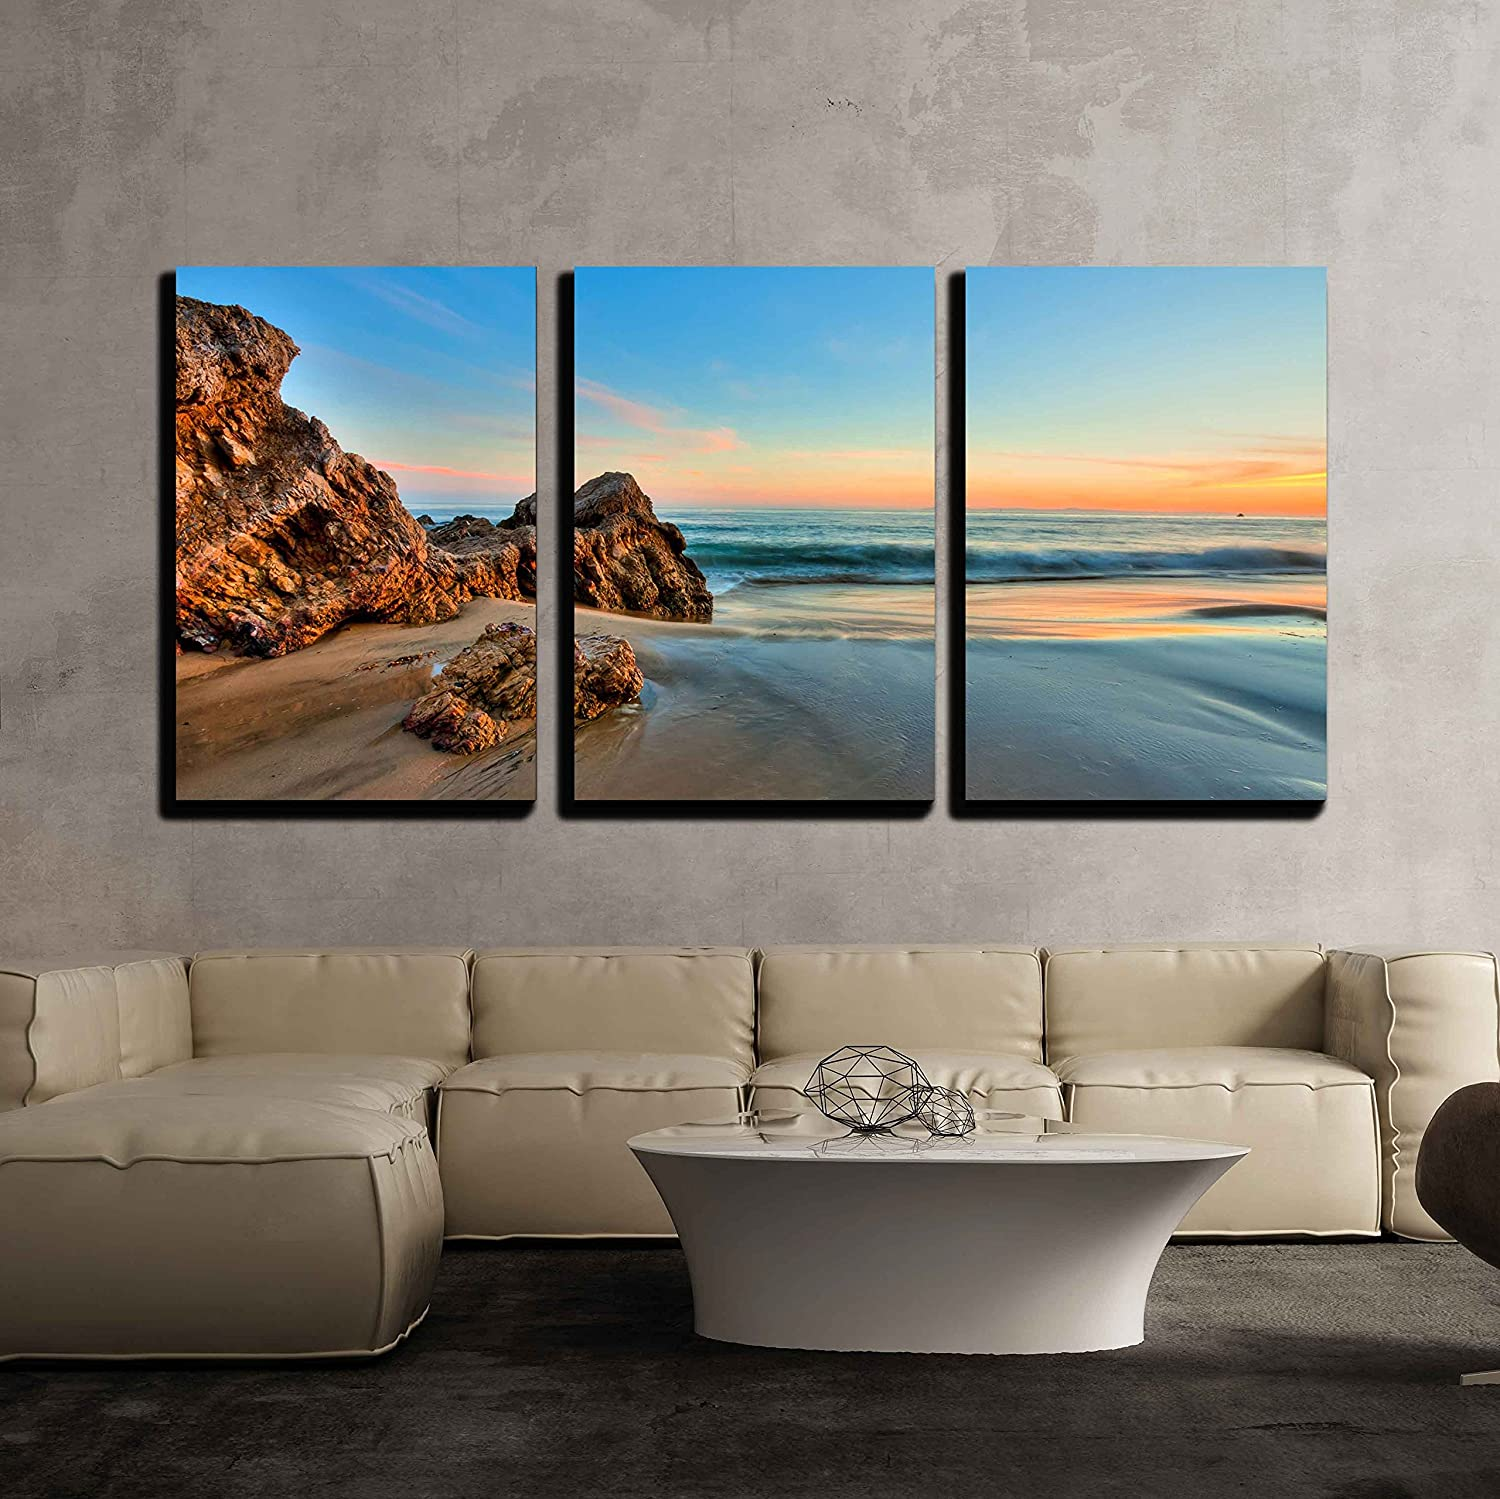 Wall26 3 Piece Canvas Wall Art Sunset At California Beach Modern Home Art Stretched And Framed Ready To Hang 16 X24 X3 Panels Posters Prints Amazon Com